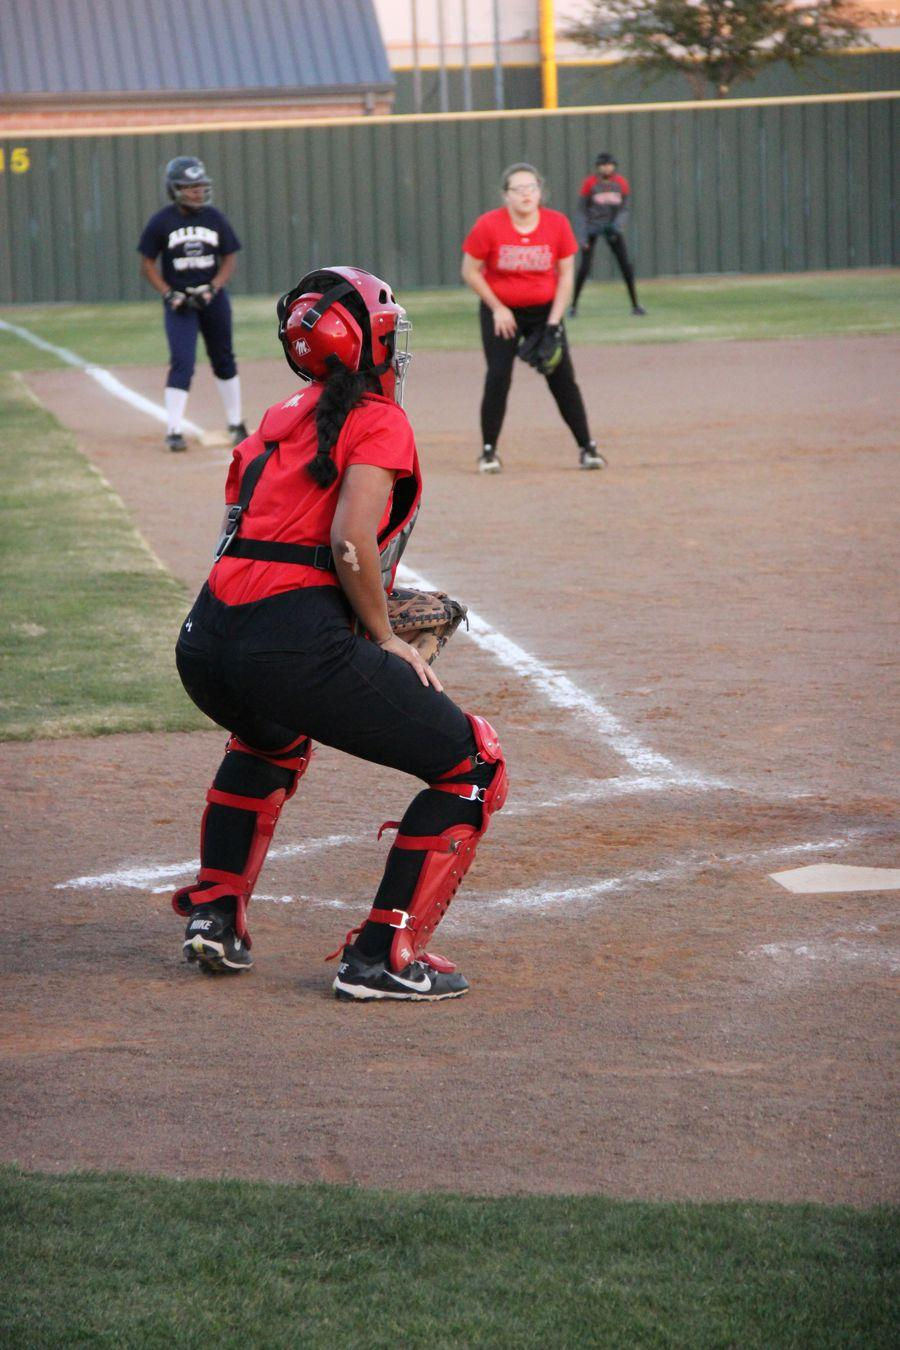 Coppell+High+School+sophomore+Iris+Loya+warms+up+catching+for+the+scrimmage+against+Allen.+Coppell+JV+II+scrimmaged+Monday+night+at+the+Coppell+ISD+baseball%2Fsoftball+complex.%0A